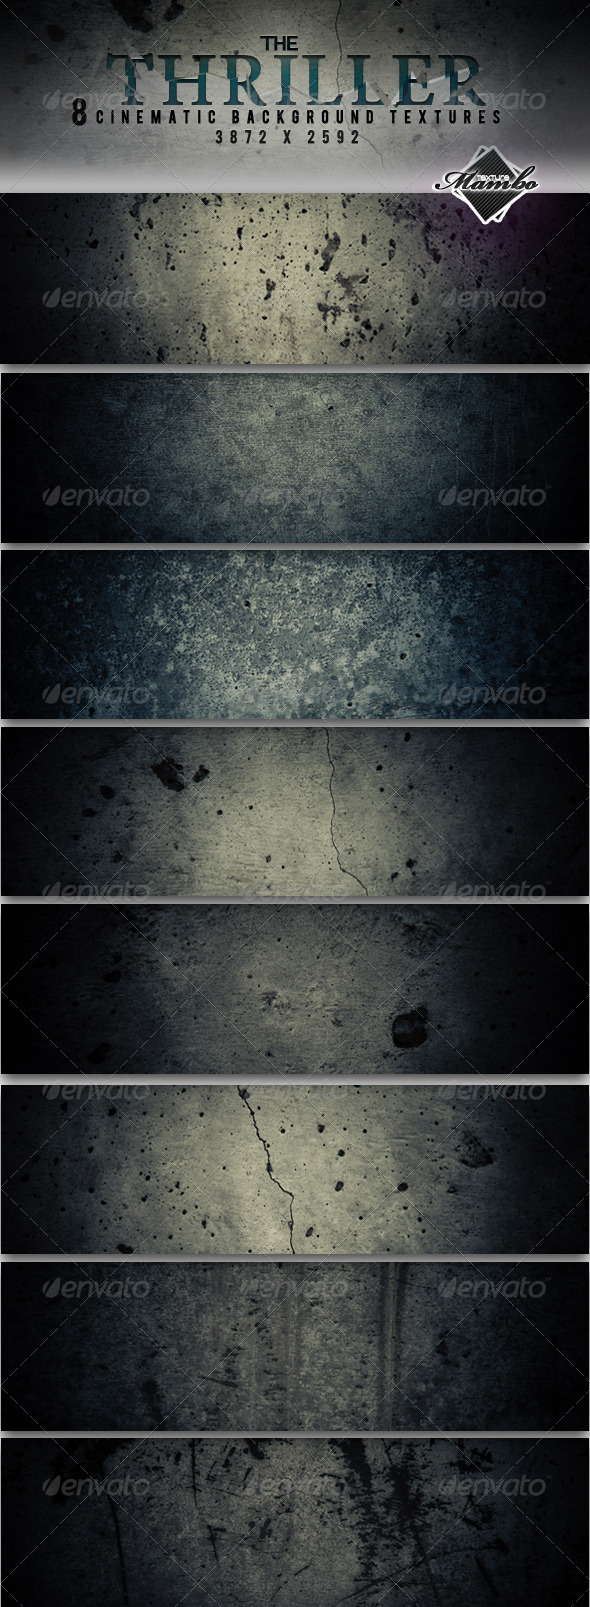 The thriller - cinematic background textures - Industrial / Grunge Textures